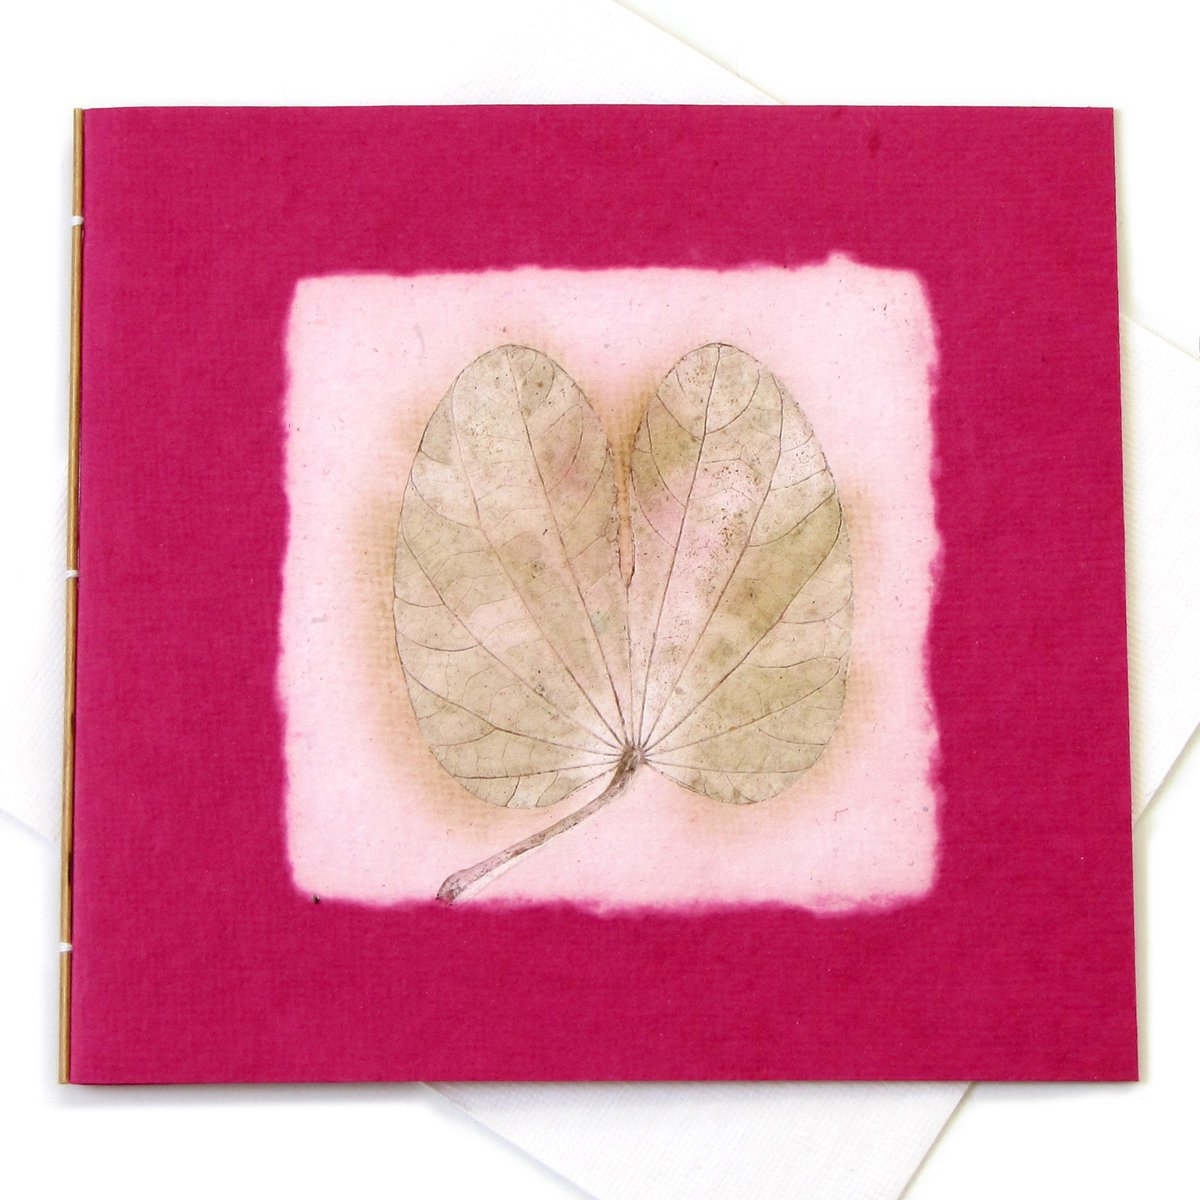 Tree free thank you mom cards eco friendly handmade paper pink heart leaf imprint 5x5 1/2